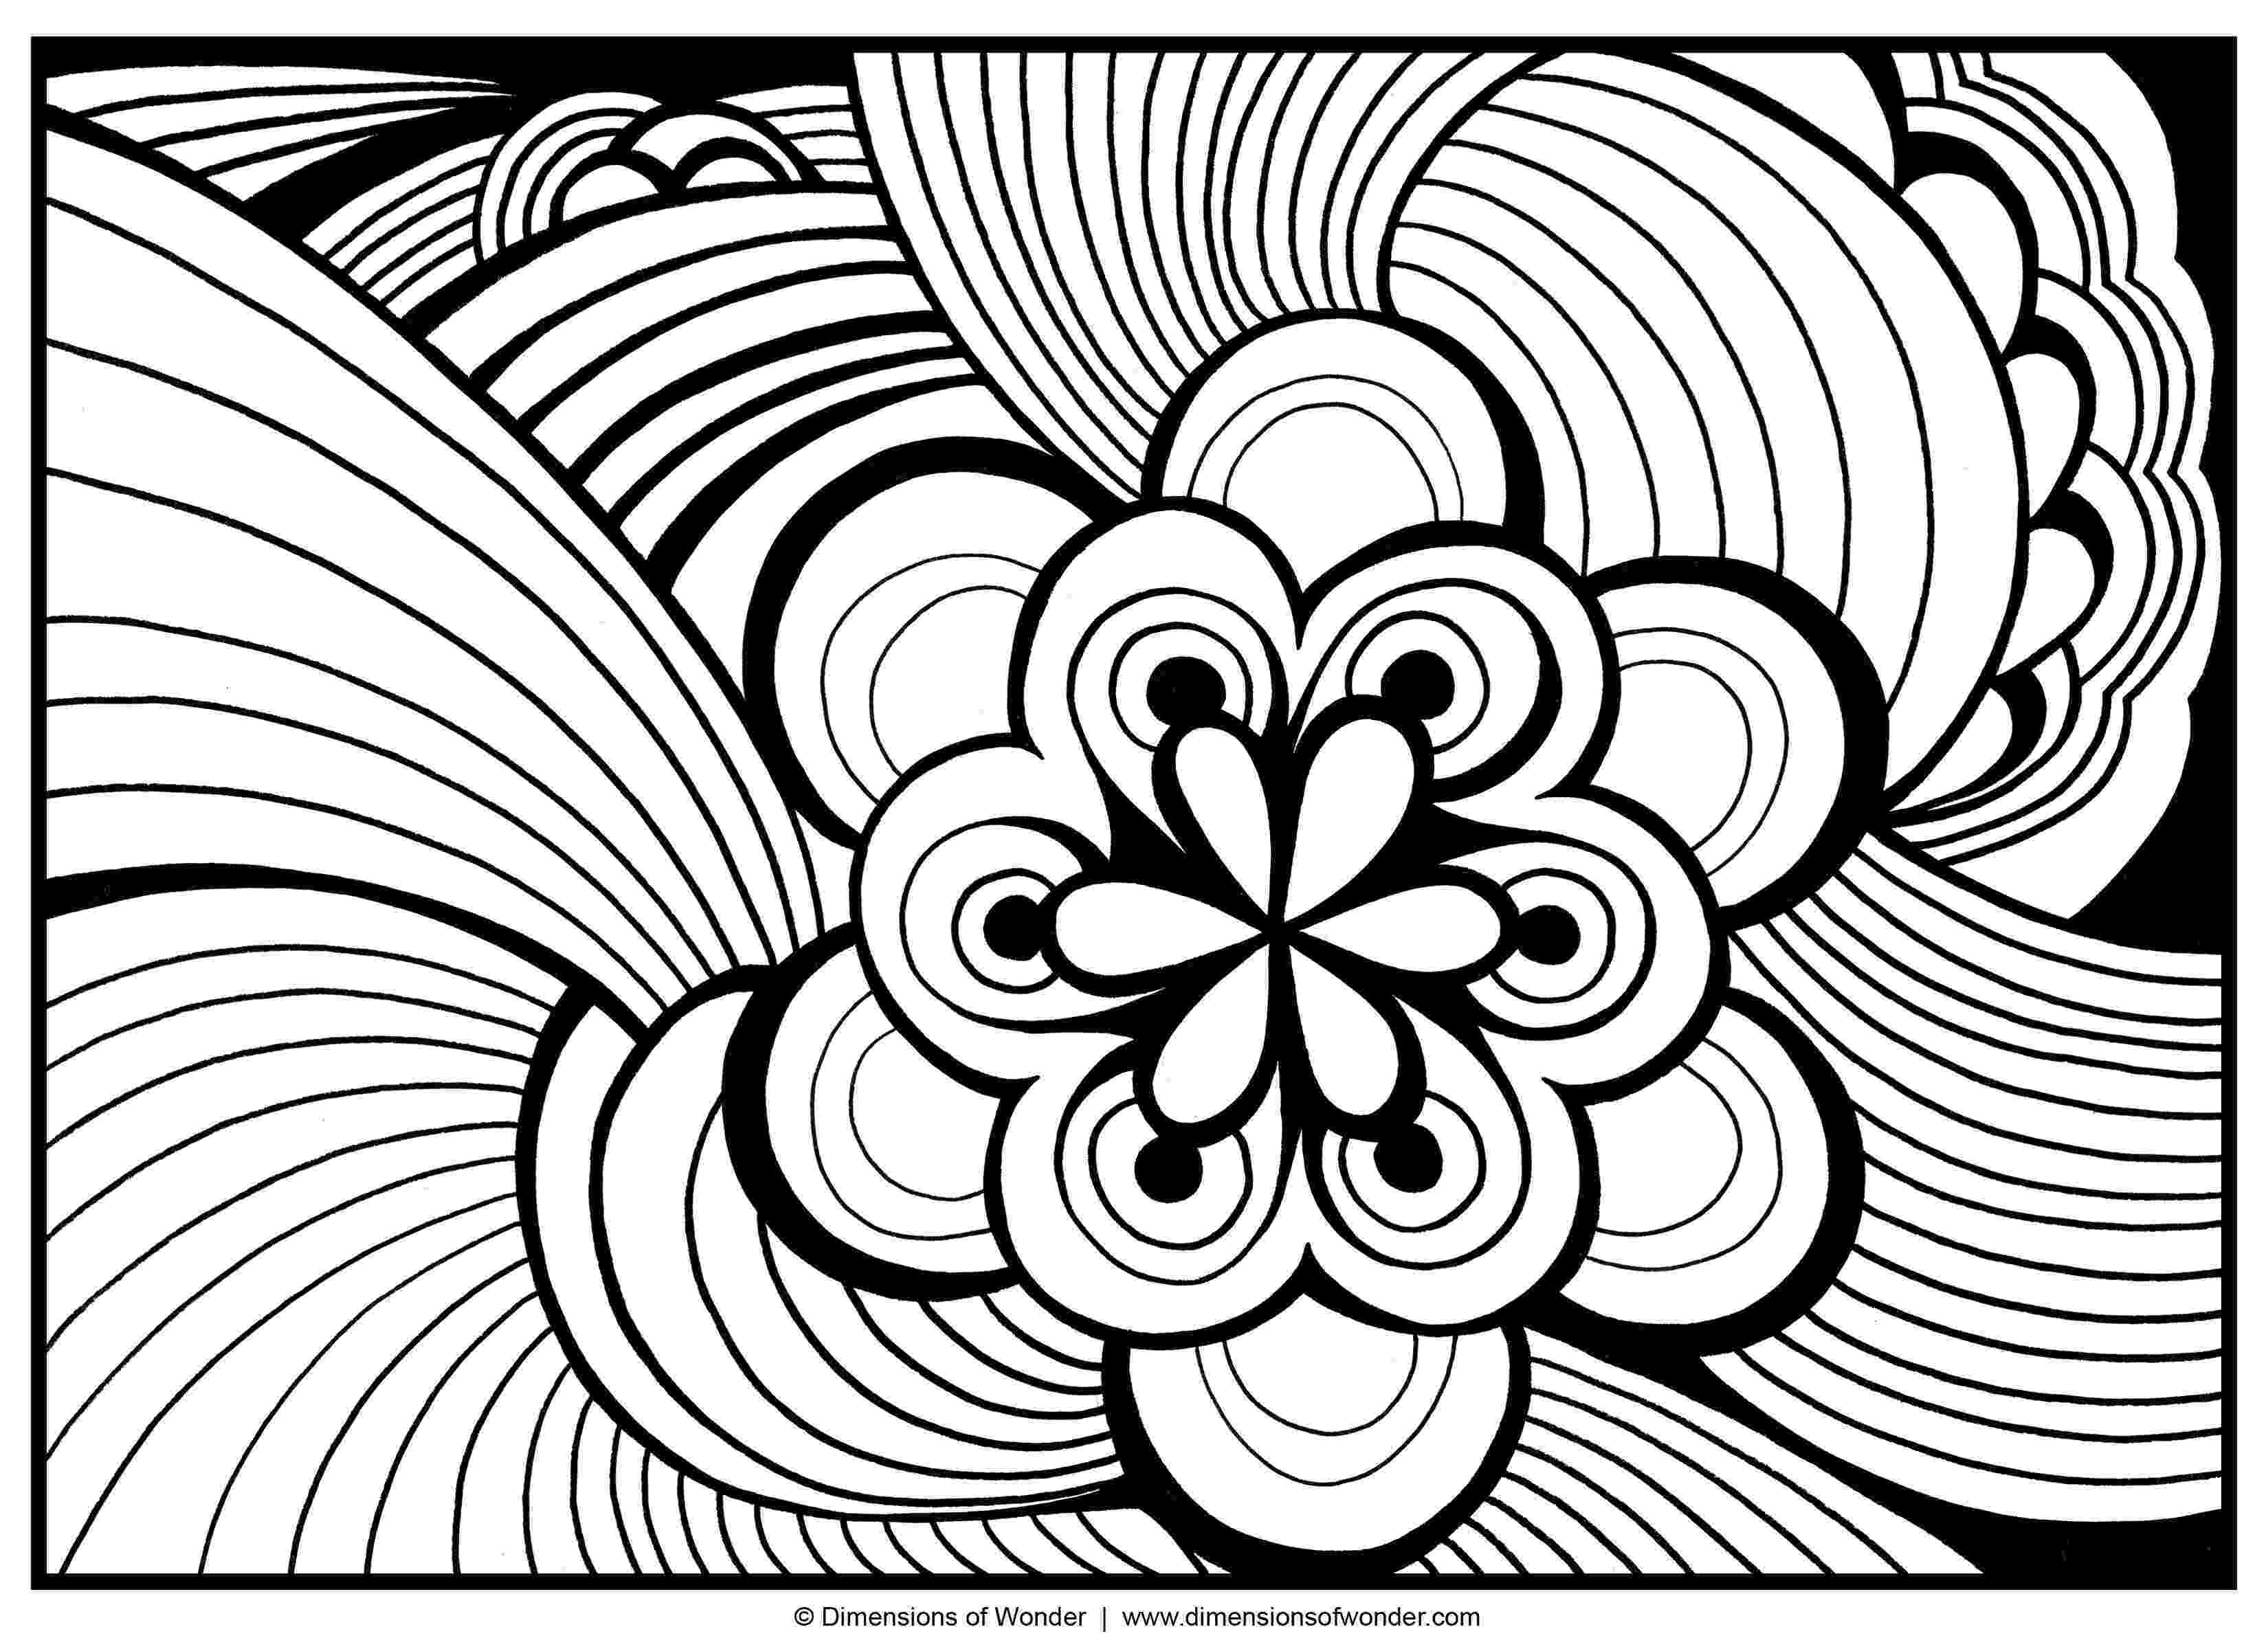 cool abstract coloring pages abstract coloring pages free large images abstract cool coloring pages abstract